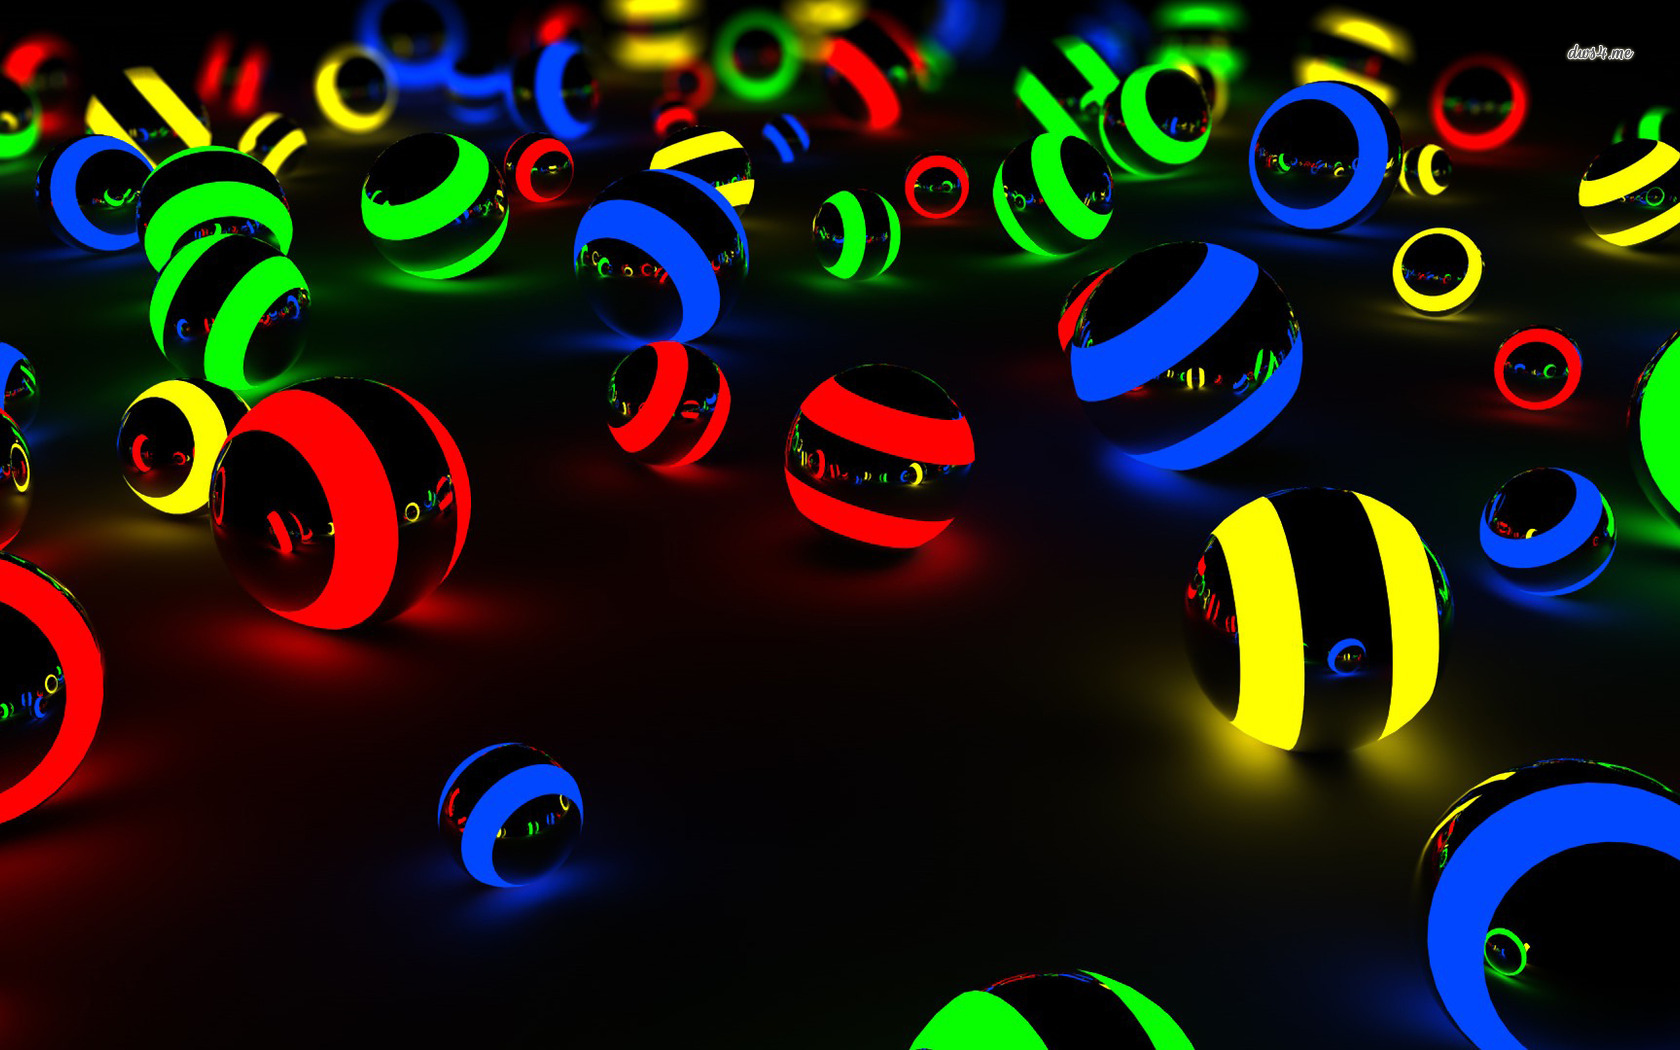 Cool 3D Neon Wallpapers | Fotolip.com Rich image and wallpaper